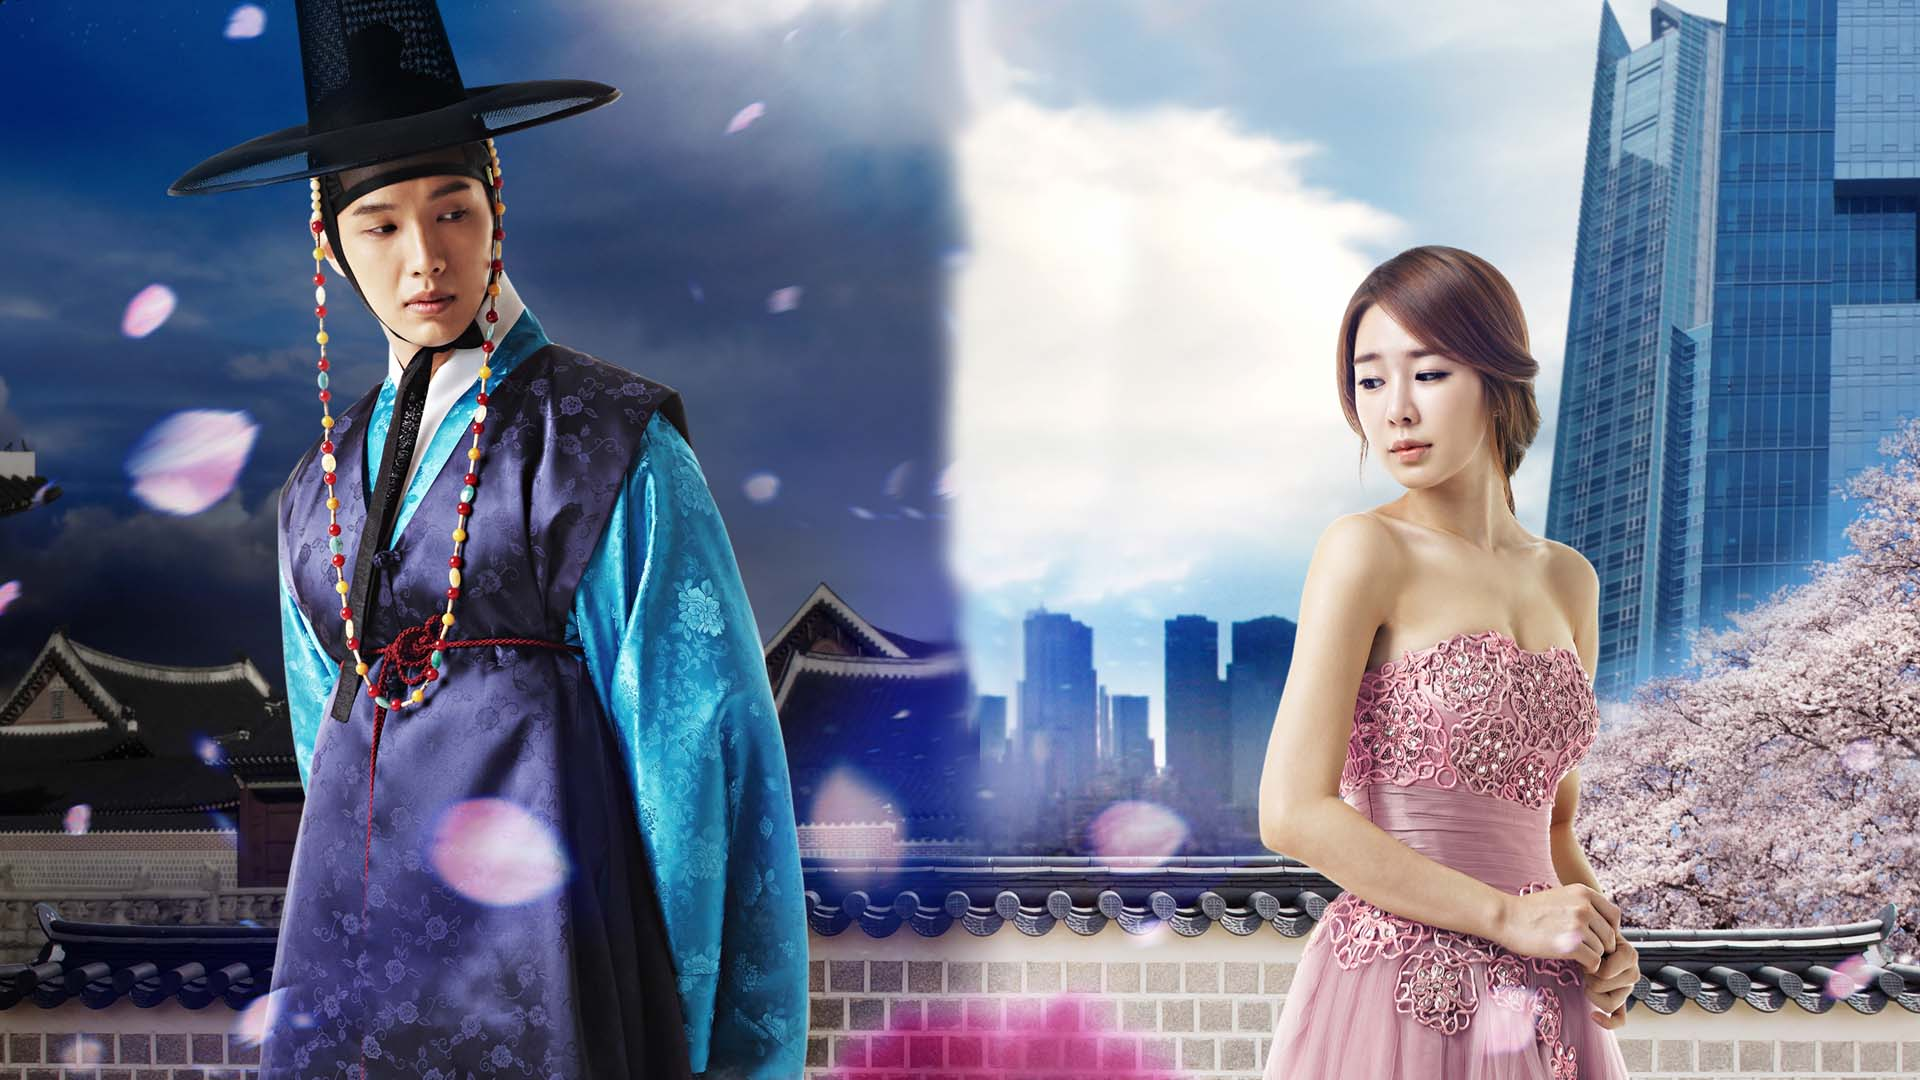 queen-in-hyun-s-man-korean-dramas-32442466-1920-1080-1